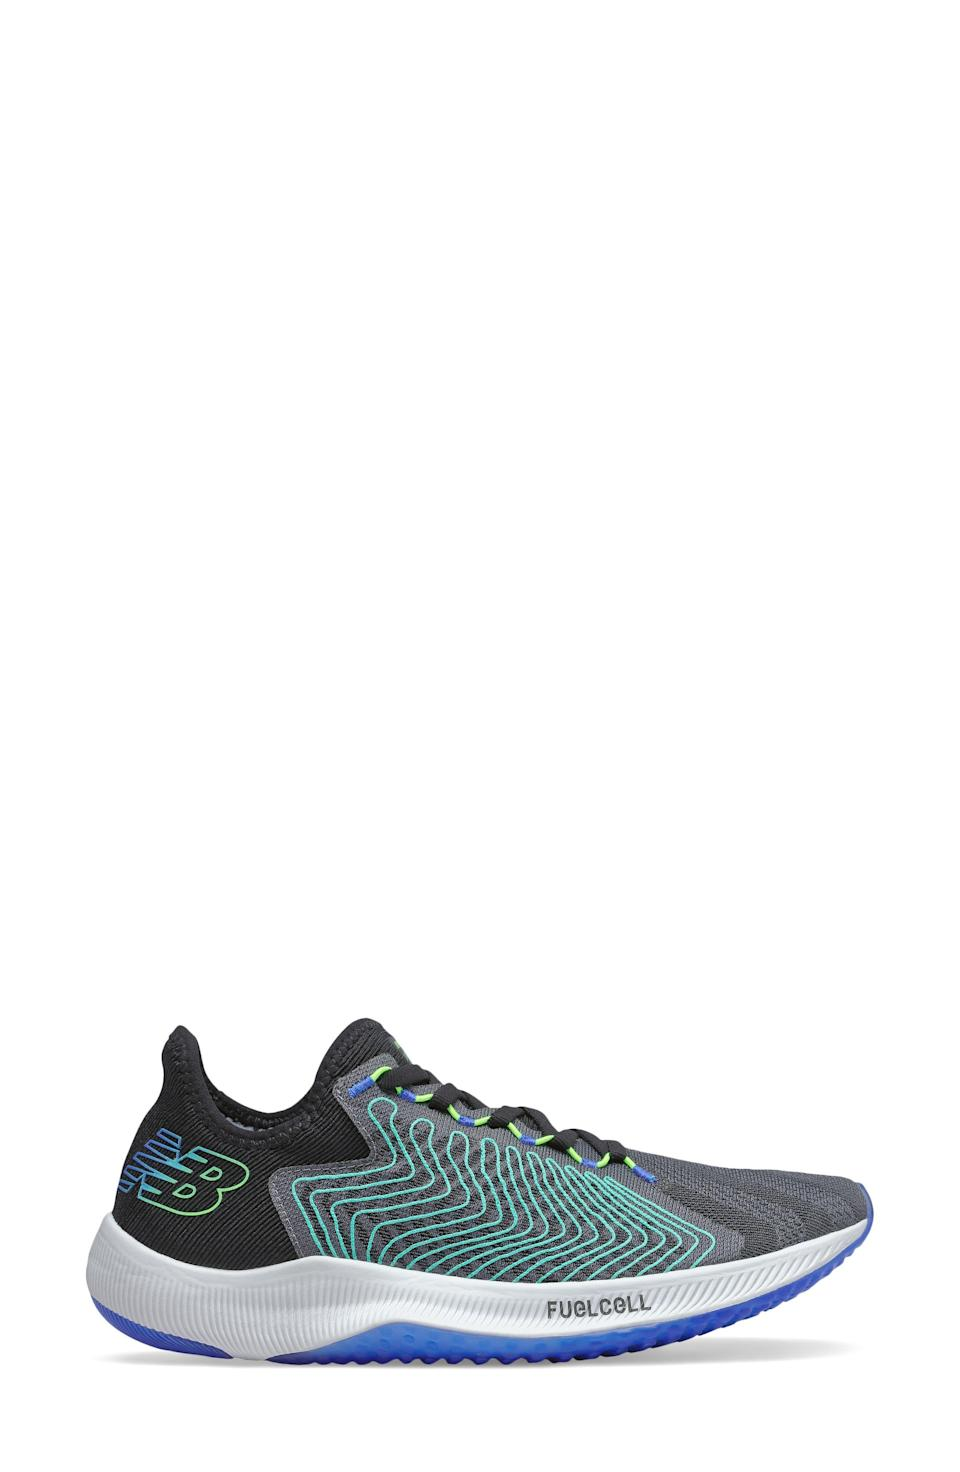 """<p><strong>NEW BALANCE</strong></p><p>nordstrom.com</p><p><a href=""""https://go.redirectingat.com?id=74968X1596630&url=https%3A%2F%2Fwww.nordstrom.com%2Fs%2Fnew-balance-fuelcell-rebel-running-shoe-men%2F5955973&sref=https%3A%2F%2Fwww.bestproducts.com%2Ffitness%2Fg37158206%2Fnordstroms-anniversary-sale-best-sneakers%2F"""" rel=""""nofollow noopener"""" target=""""_blank"""" data-ylk=""""slk:BUY IT HERE"""" class=""""link rapid-noclick-resp"""">BUY IT HERE</a></p><p><del>$130<br></del><strong>$84.90</strong></p><p>Ready to <em>literally </em>go the extra mile? Between the lightweight construction and propulsive, nitrogen-infused FuelCell foam soles, New Balance's FuelCell Rebel sneakers will have you do just that. </p>"""